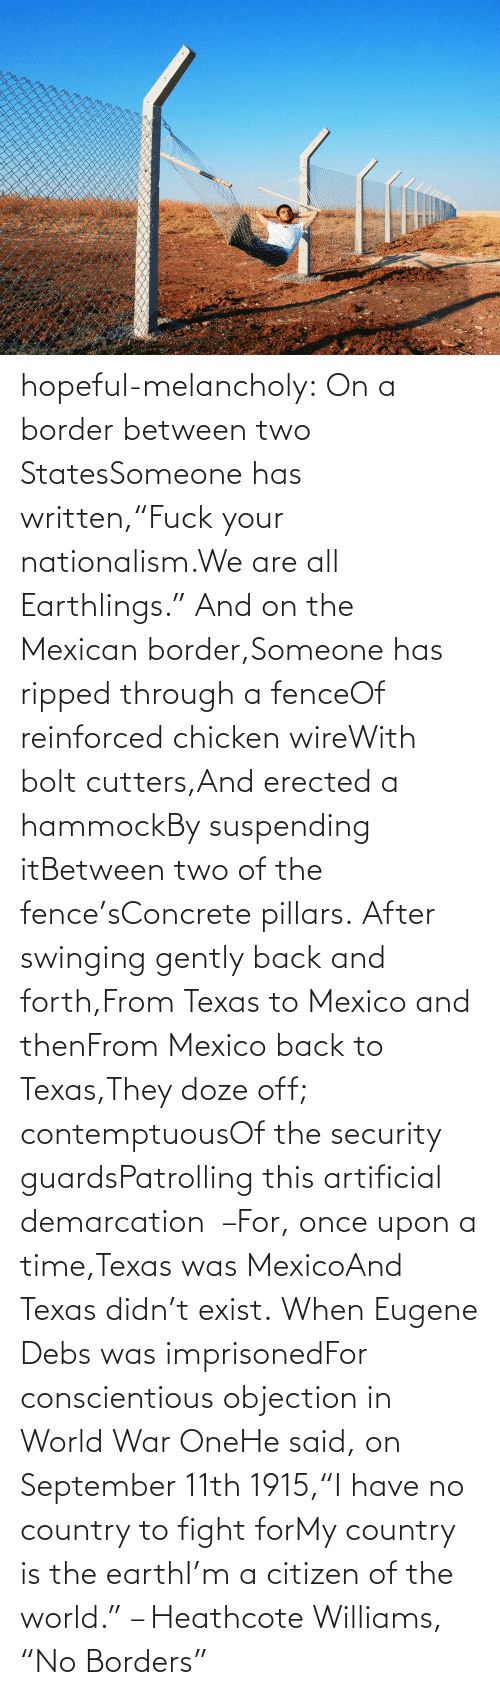 """Artificial: hopeful-melancholy:  On a border between two StatesSomeone has written,""""Fuck your nationalism.We are all Earthlings."""" And on the Mexican border,Someone has ripped through a fenceOf reinforced chicken wireWith bolt cutters,And erected a hammockBy suspending itBetween two of the fence'sConcrete pillars. After swinging gently back and forth,From Texas to Mexico and thenFrom Mexico back to Texas,They doze off; contemptuousOf the security guardsPatrolling this artificial demarcation –For, once upon a time,Texas was MexicoAnd Texas didn't exist. When Eugene Debs was imprisonedFor conscientious objection in World War OneHe said, on September 11th 1915,""""I have no country to fight forMy country is the earthI'm a citizen of the world."""" – Heathcote Williams, """"No Borders"""""""